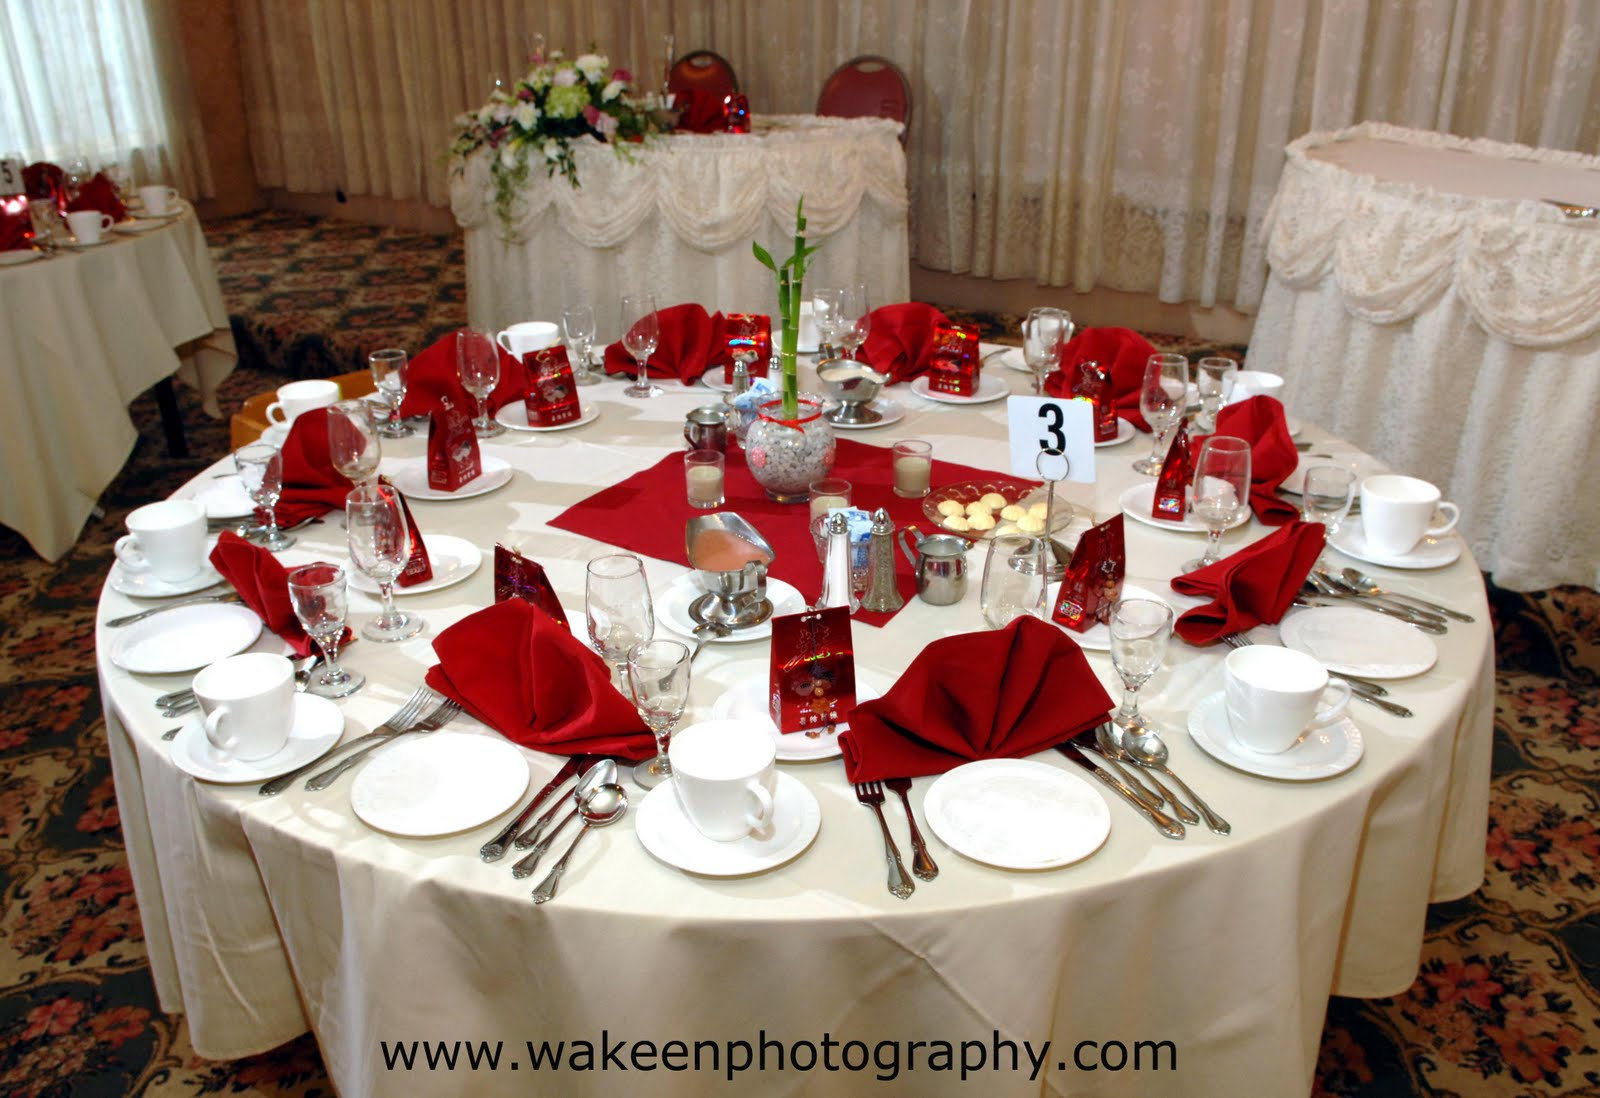 Wakeen Photography Blog Central MA Wedding Locales Part II